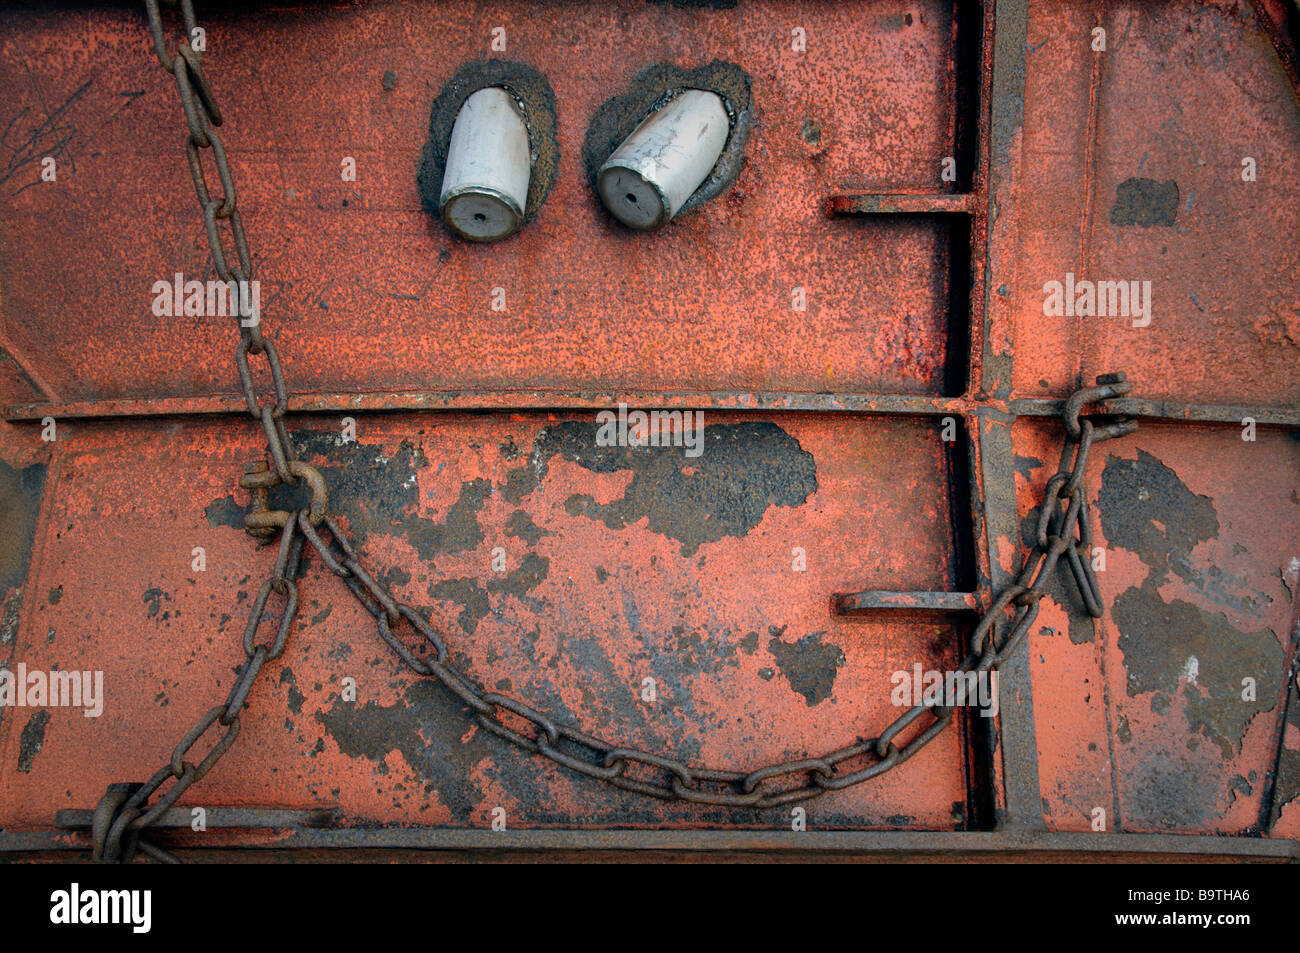 Detail from quayside shipping equipment - Stock Image